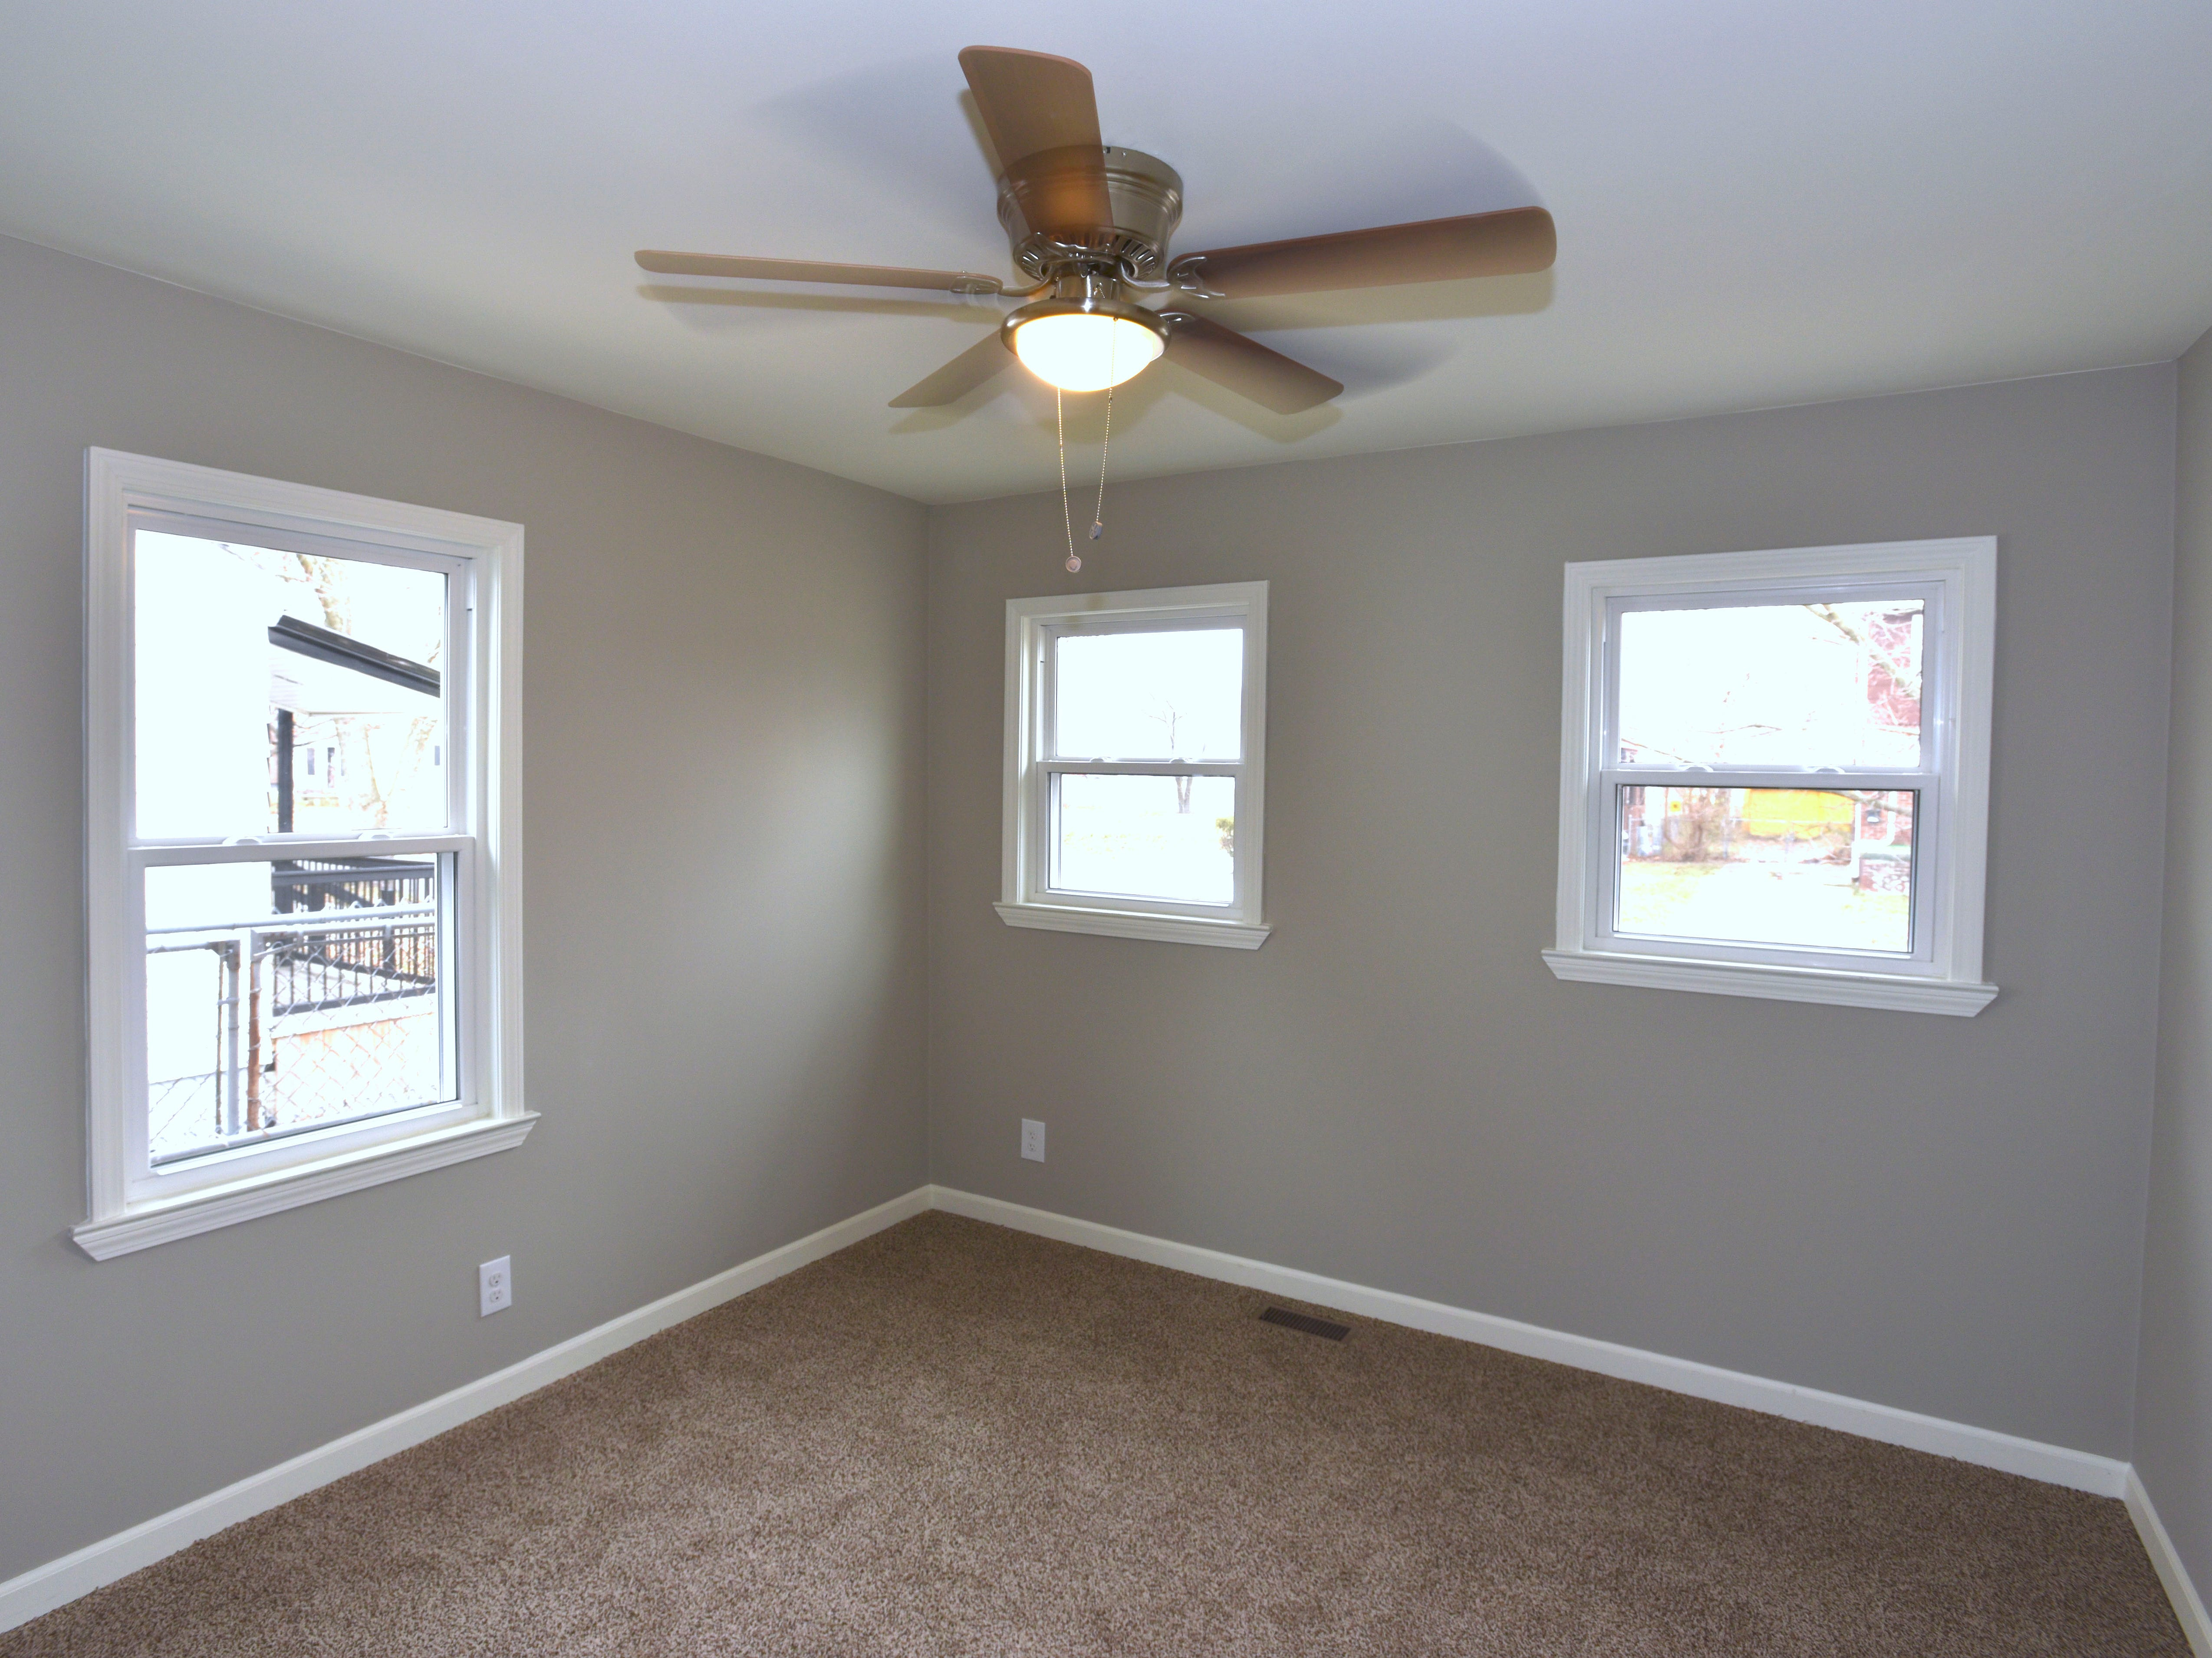 This is the newly renovated master bedroom.